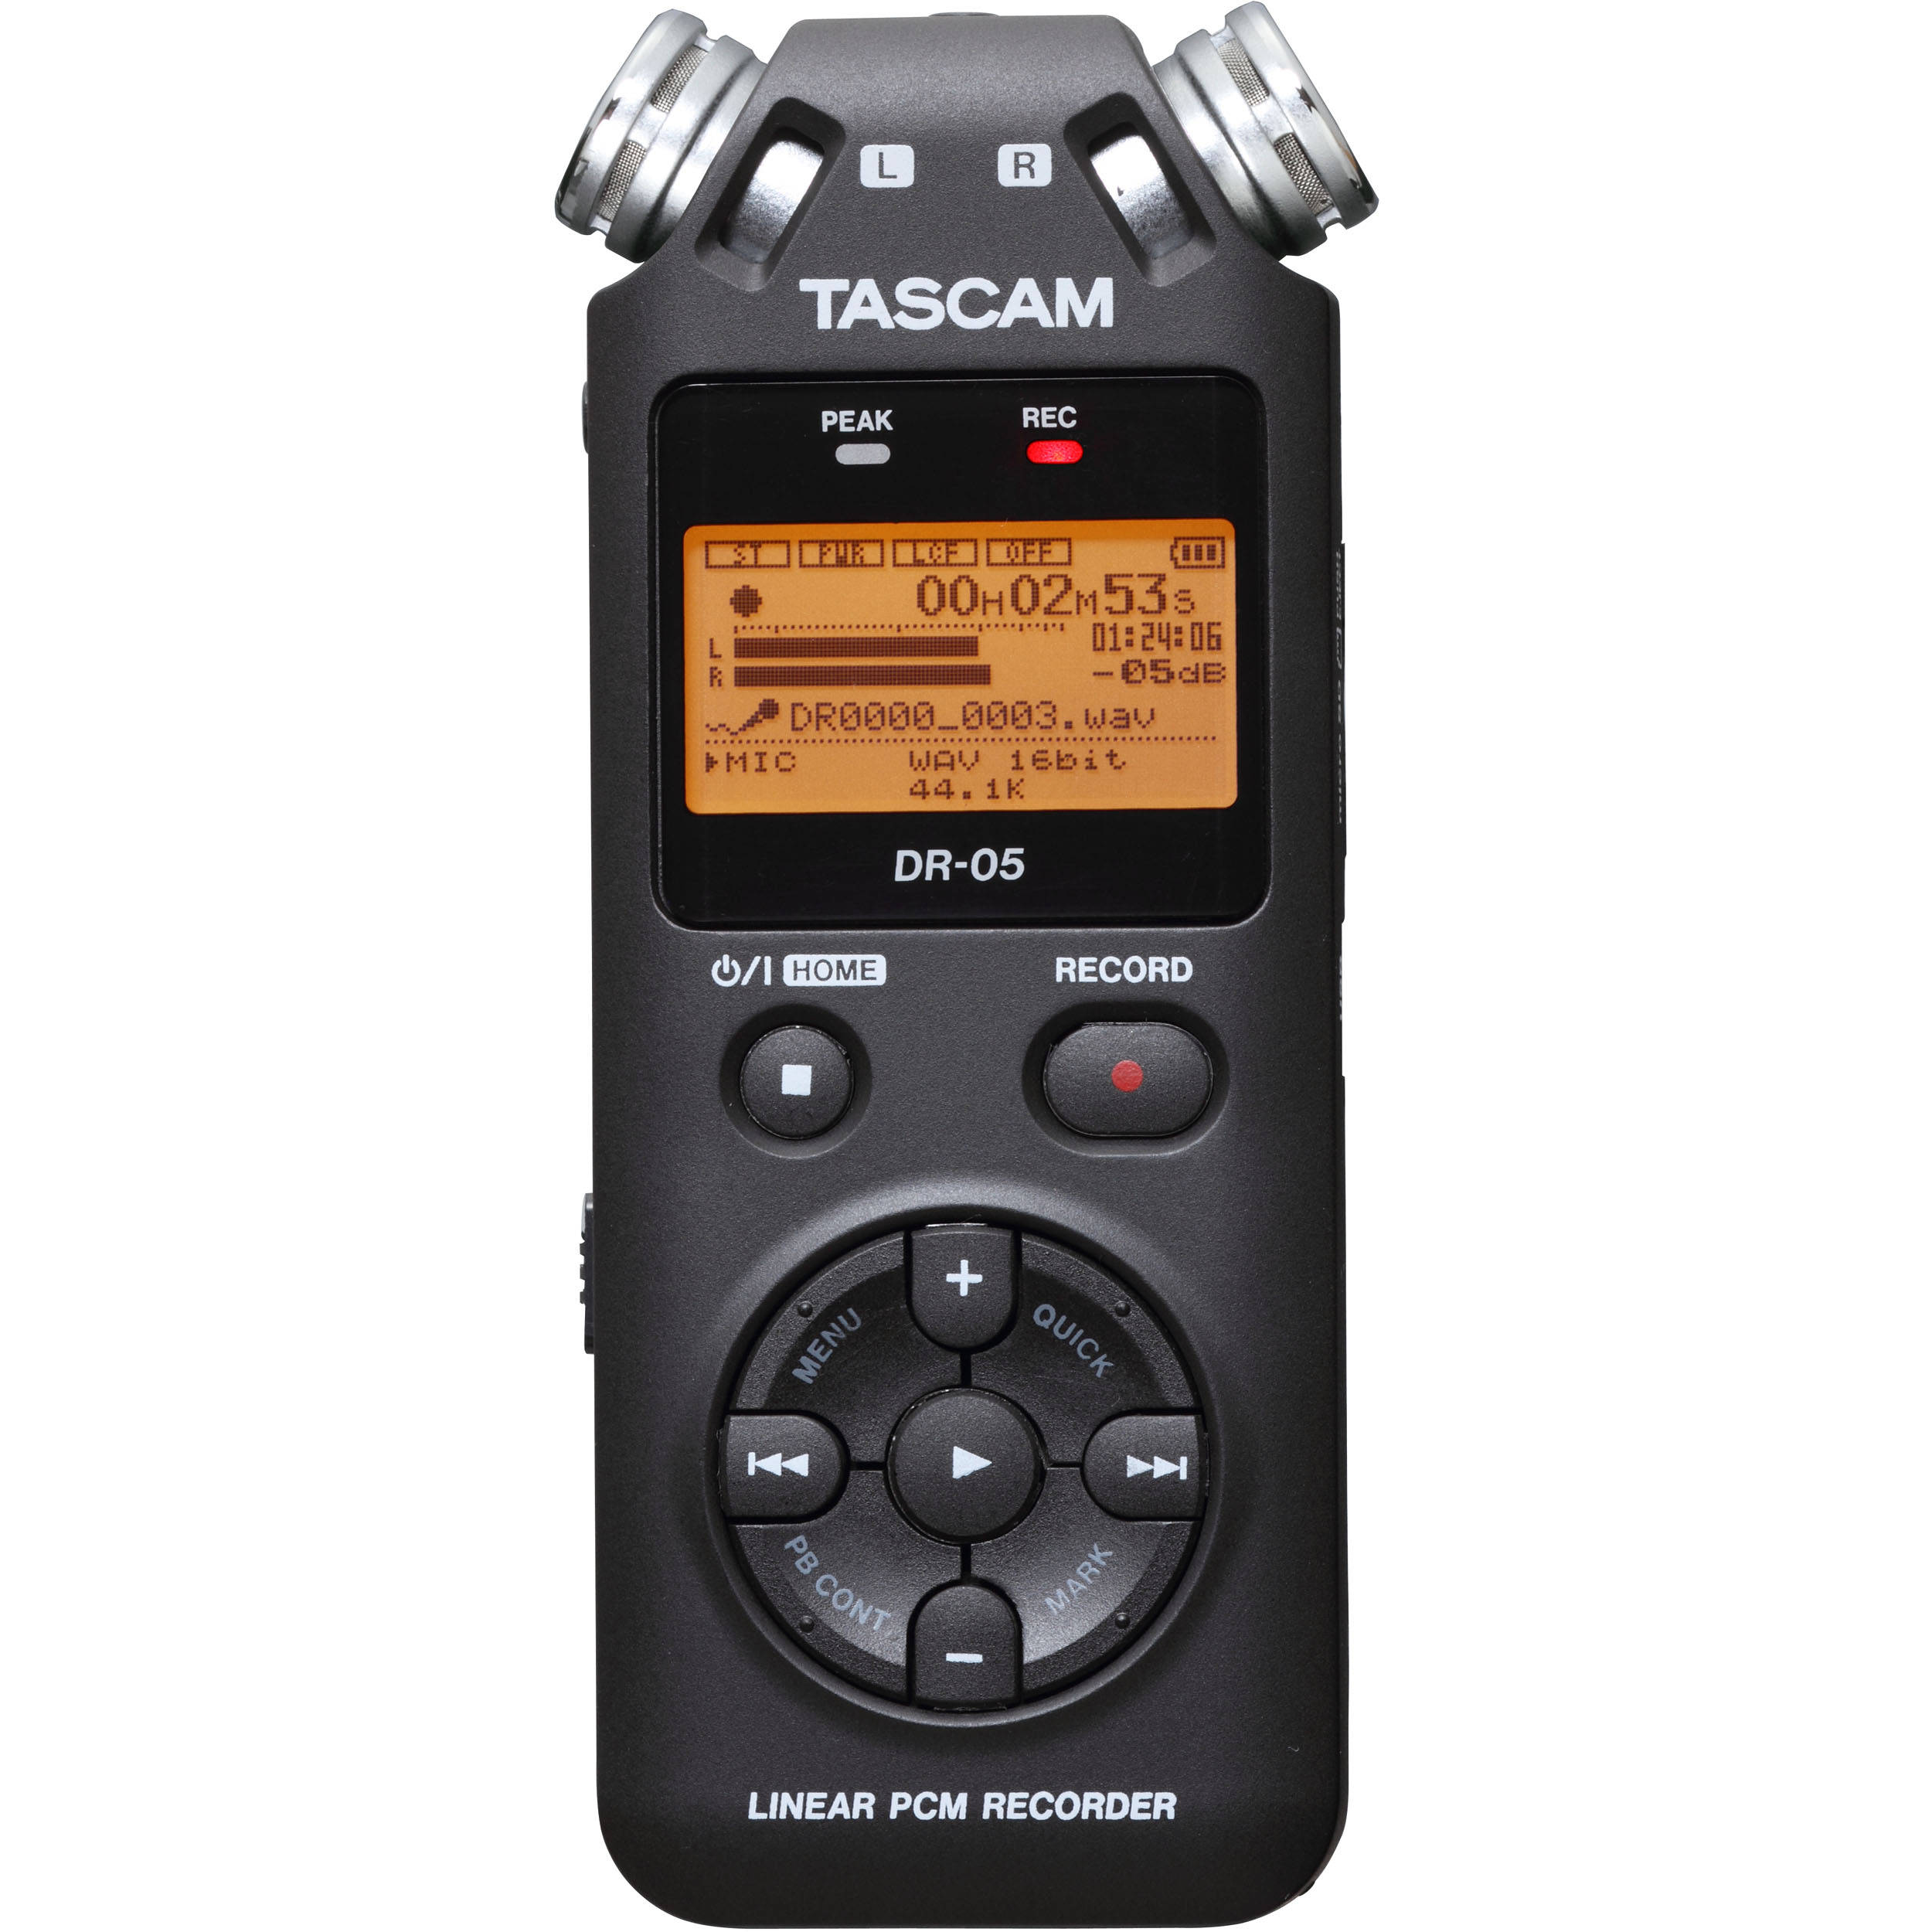 Tascam Dr 05 Portable Handheld Digital Audio Recorder Bh Hot Deals Samsung 32fh4003 Hitam Tv Led 32 Inch Black